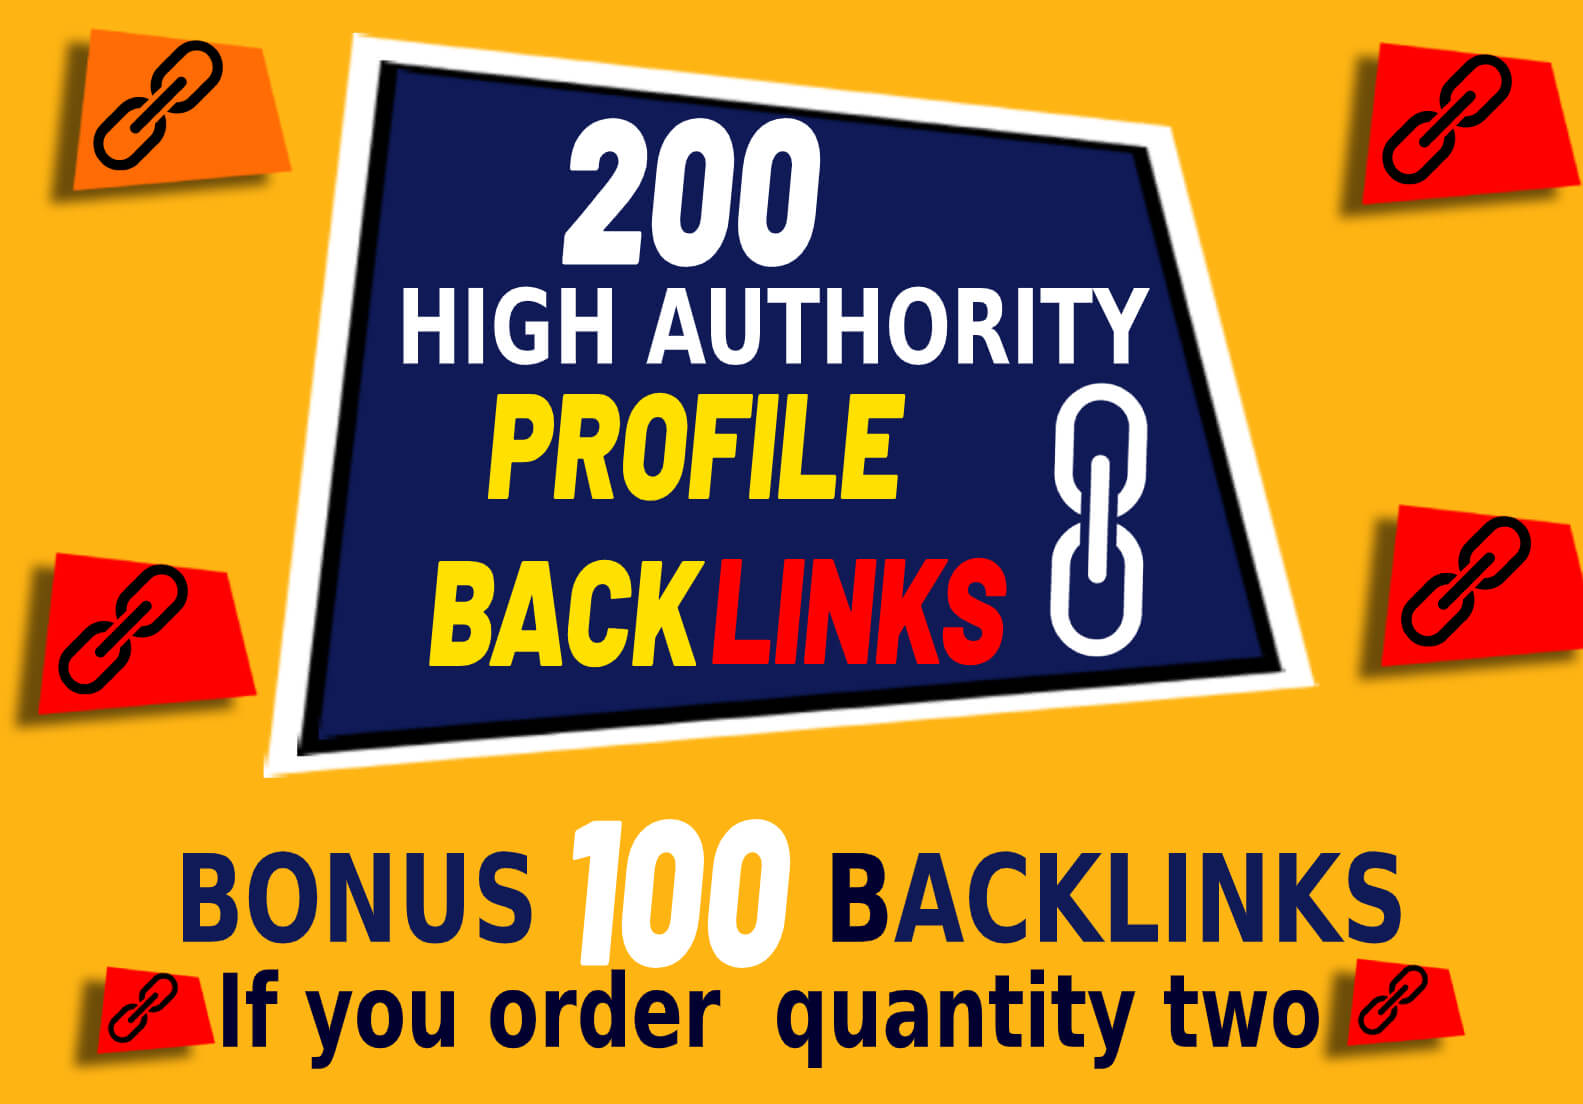 200 High DA SEO Profile Backlinks Creations or Profile Link Building submission manually